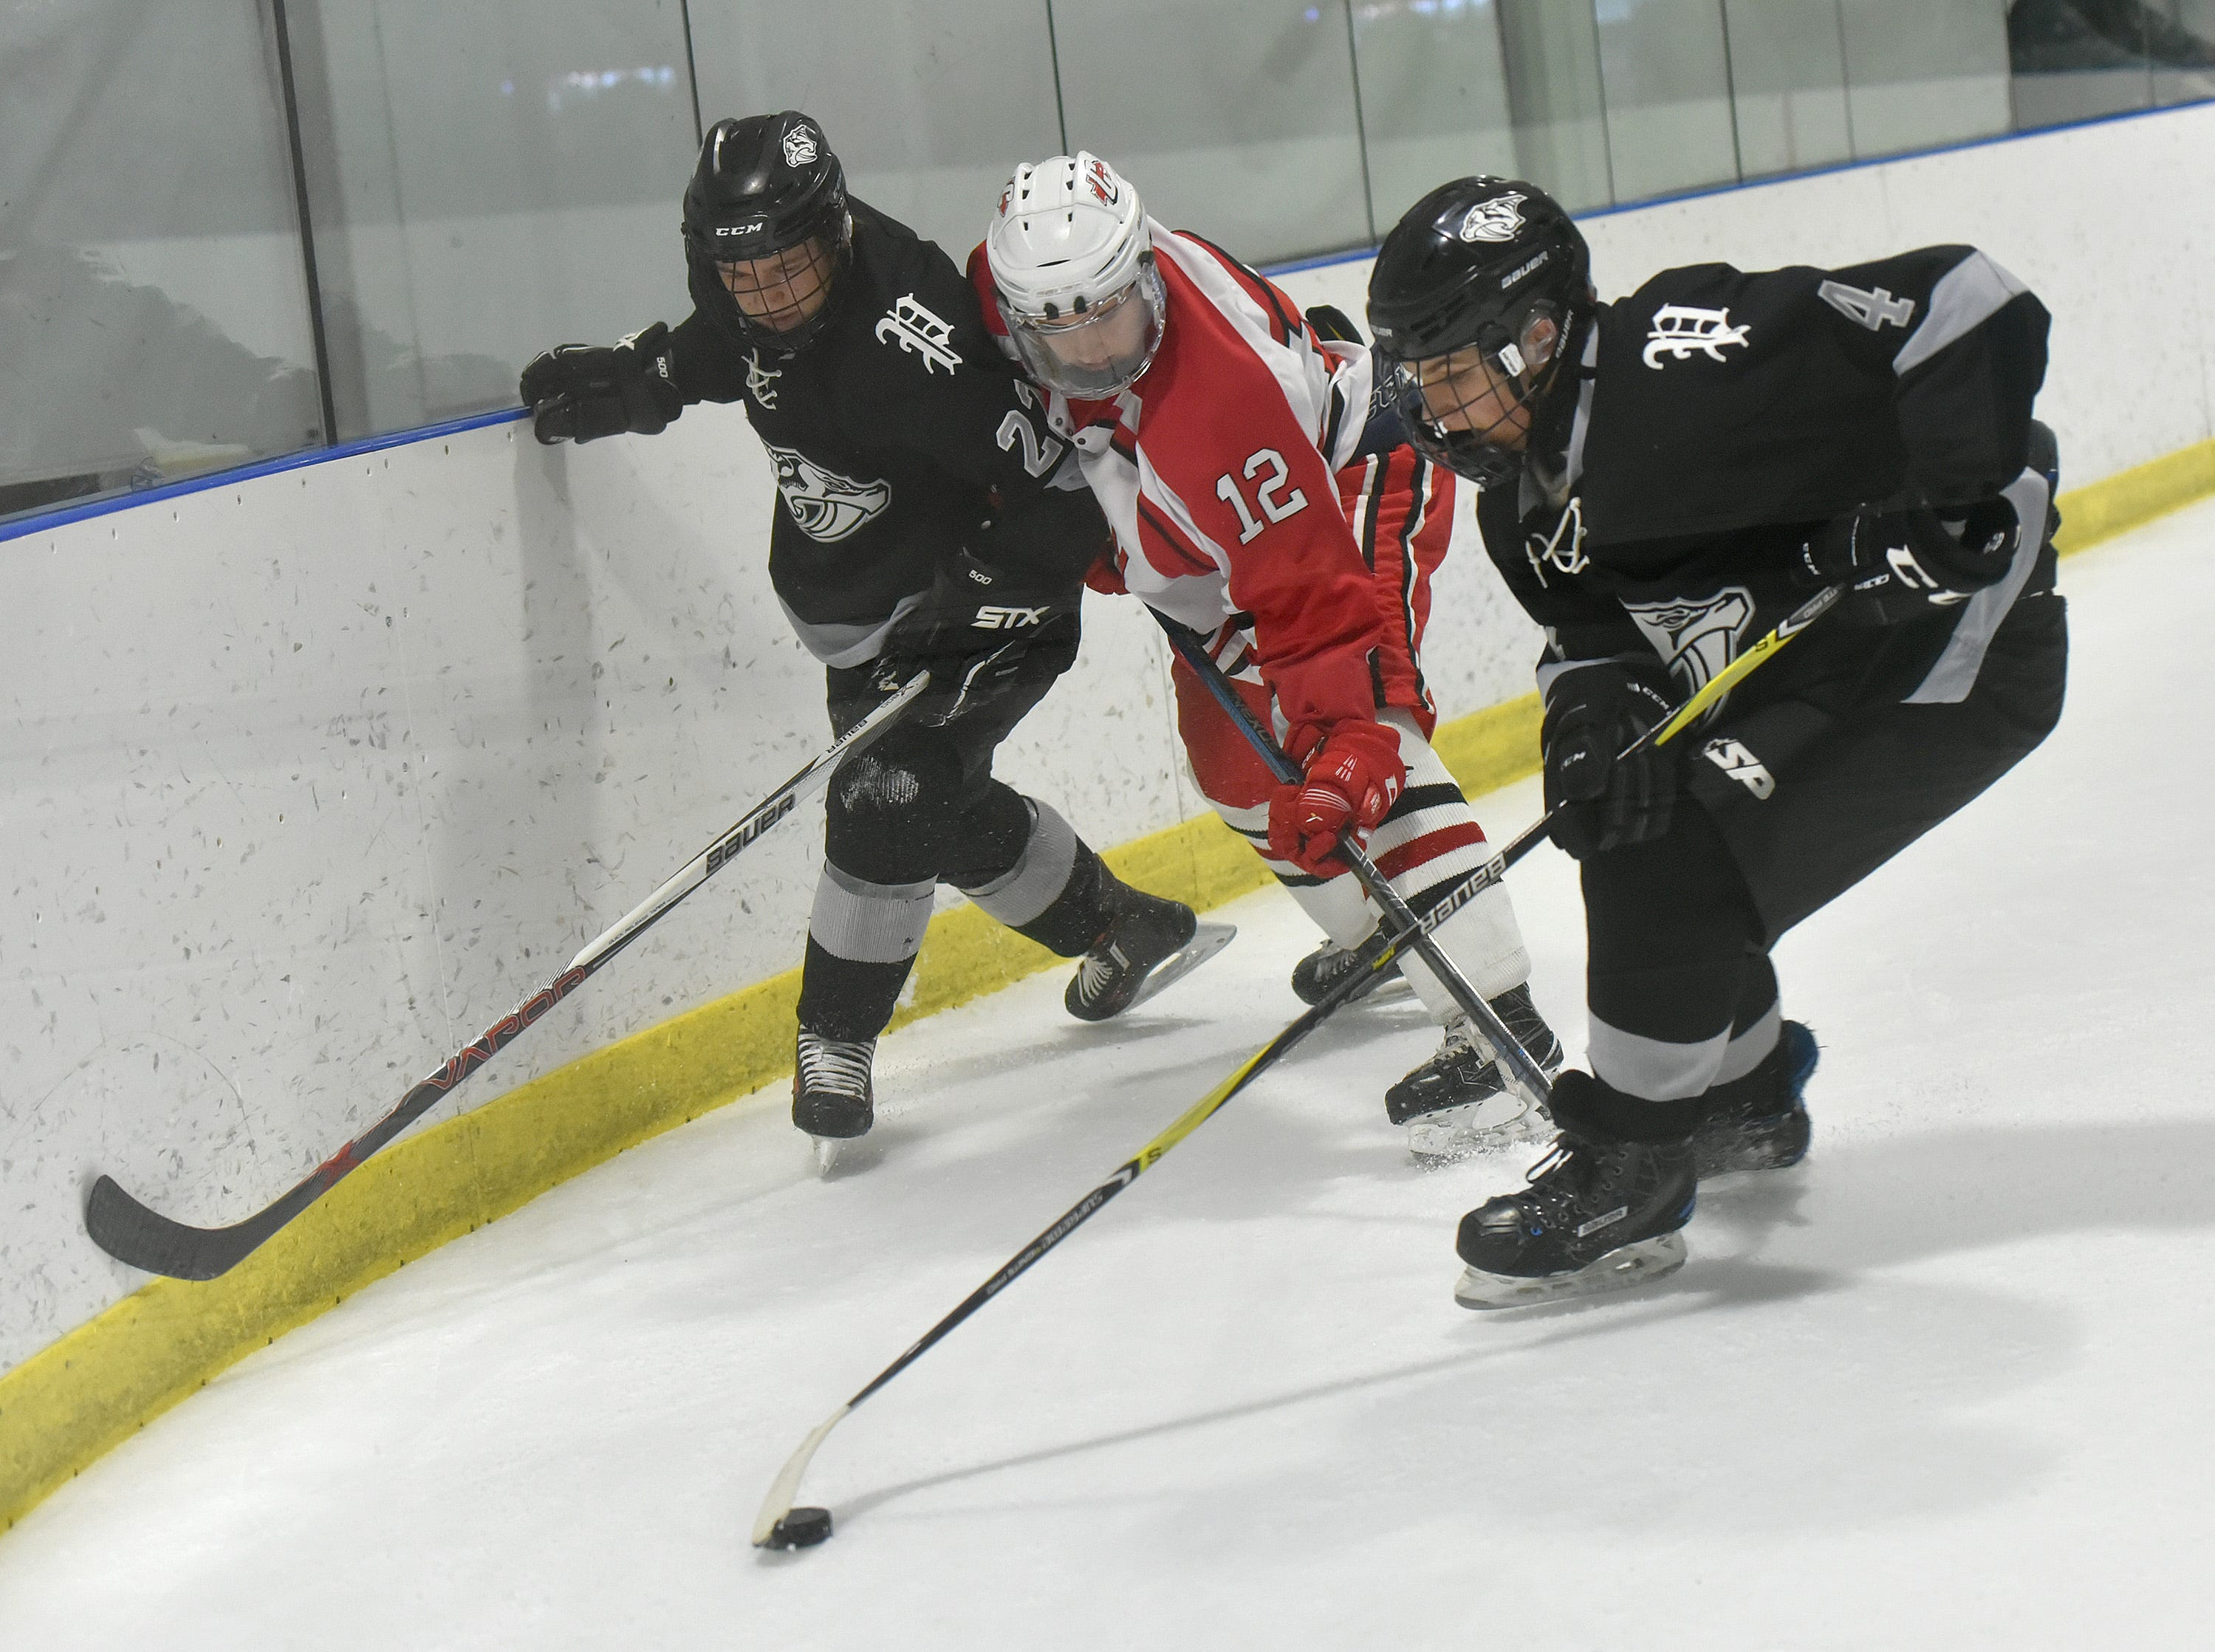 Widcats Brendan Matey (4) and Nick Schoen (22) pull the puck from the corner, away from Chief James Monteith (12).